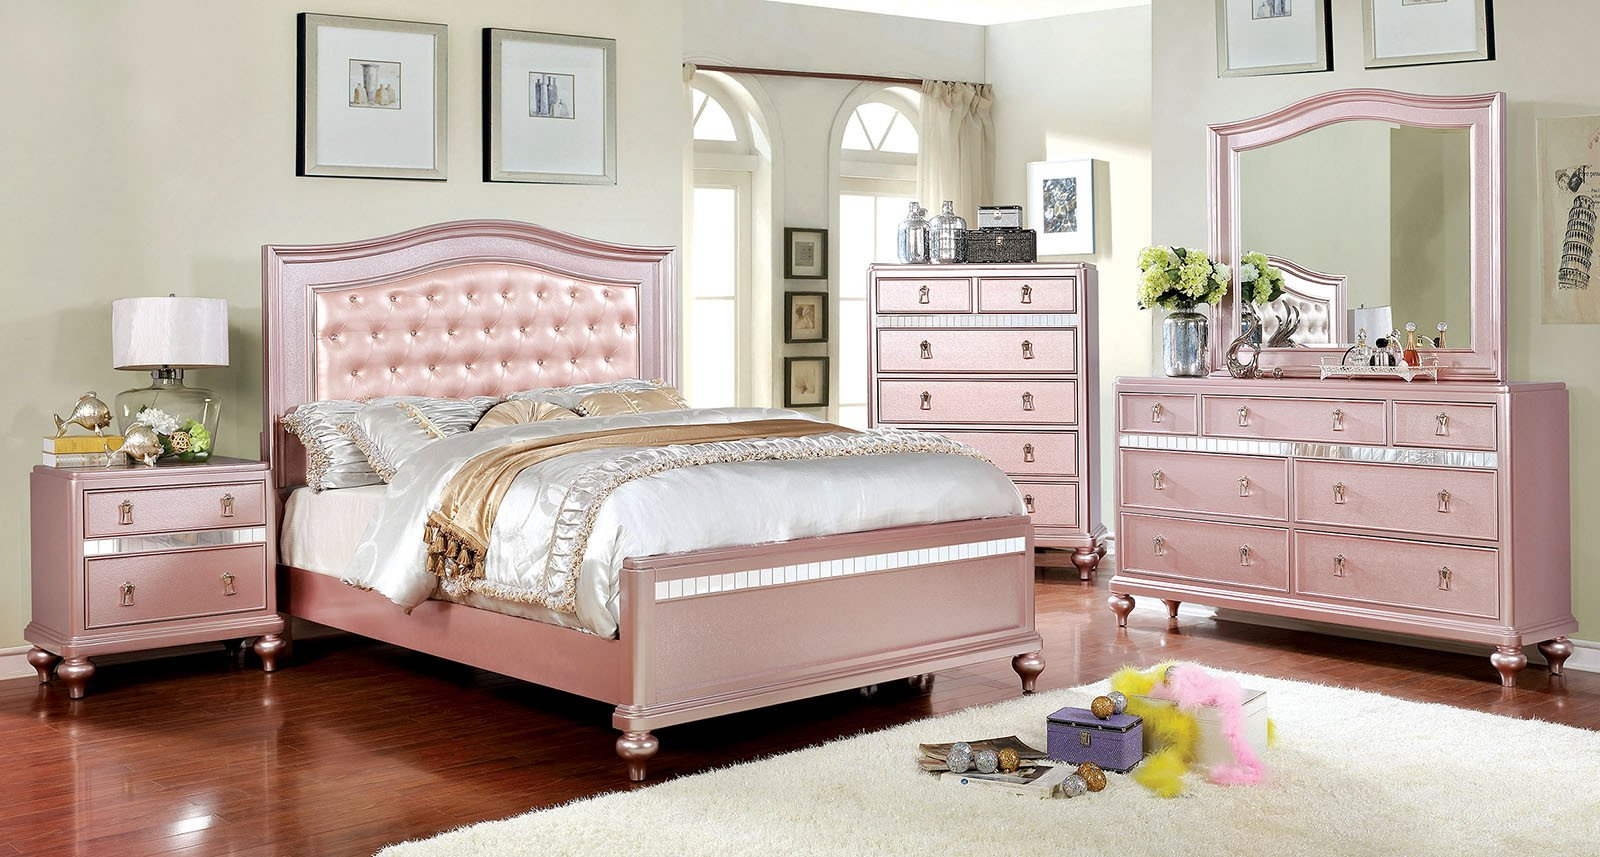 King Size Bedroom Benches Best Of Ariston Rose Gold Finish Cal King Size Bed with Mirrored Trim Jeweled button Tufted Padded Leather Headboard